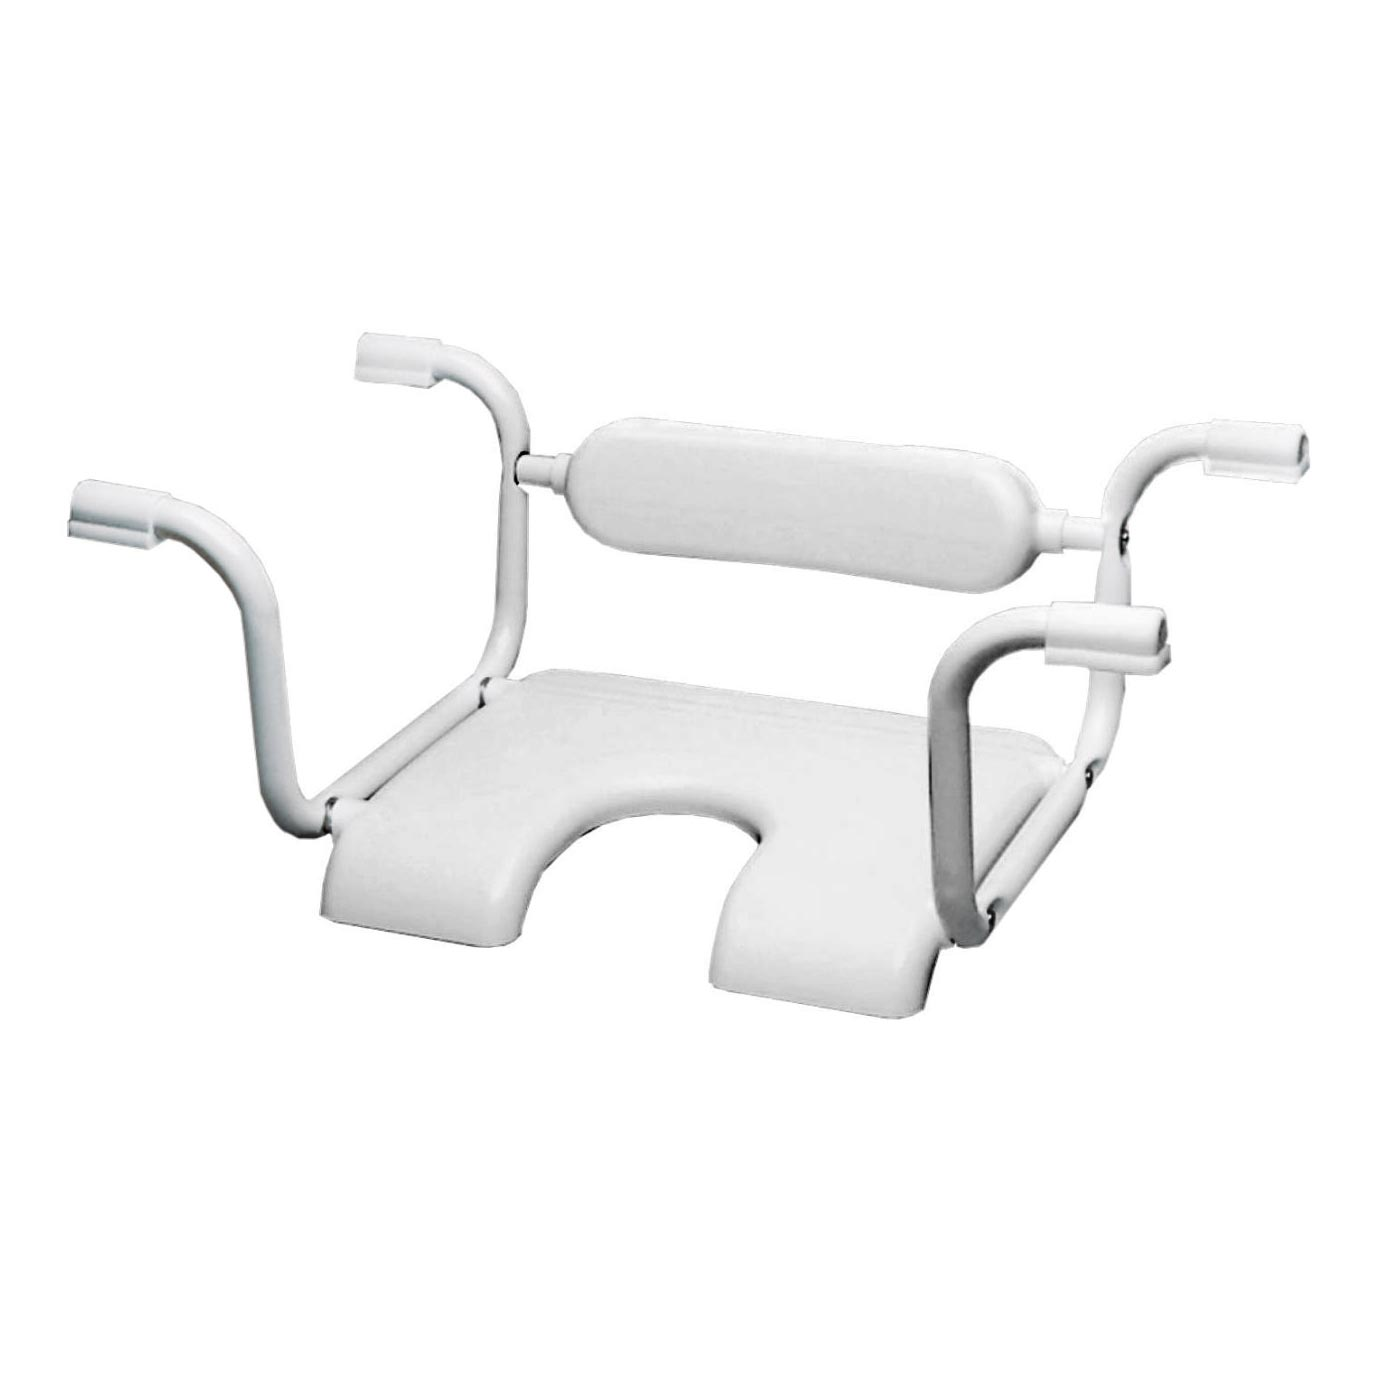 Etac Rufus bath chair